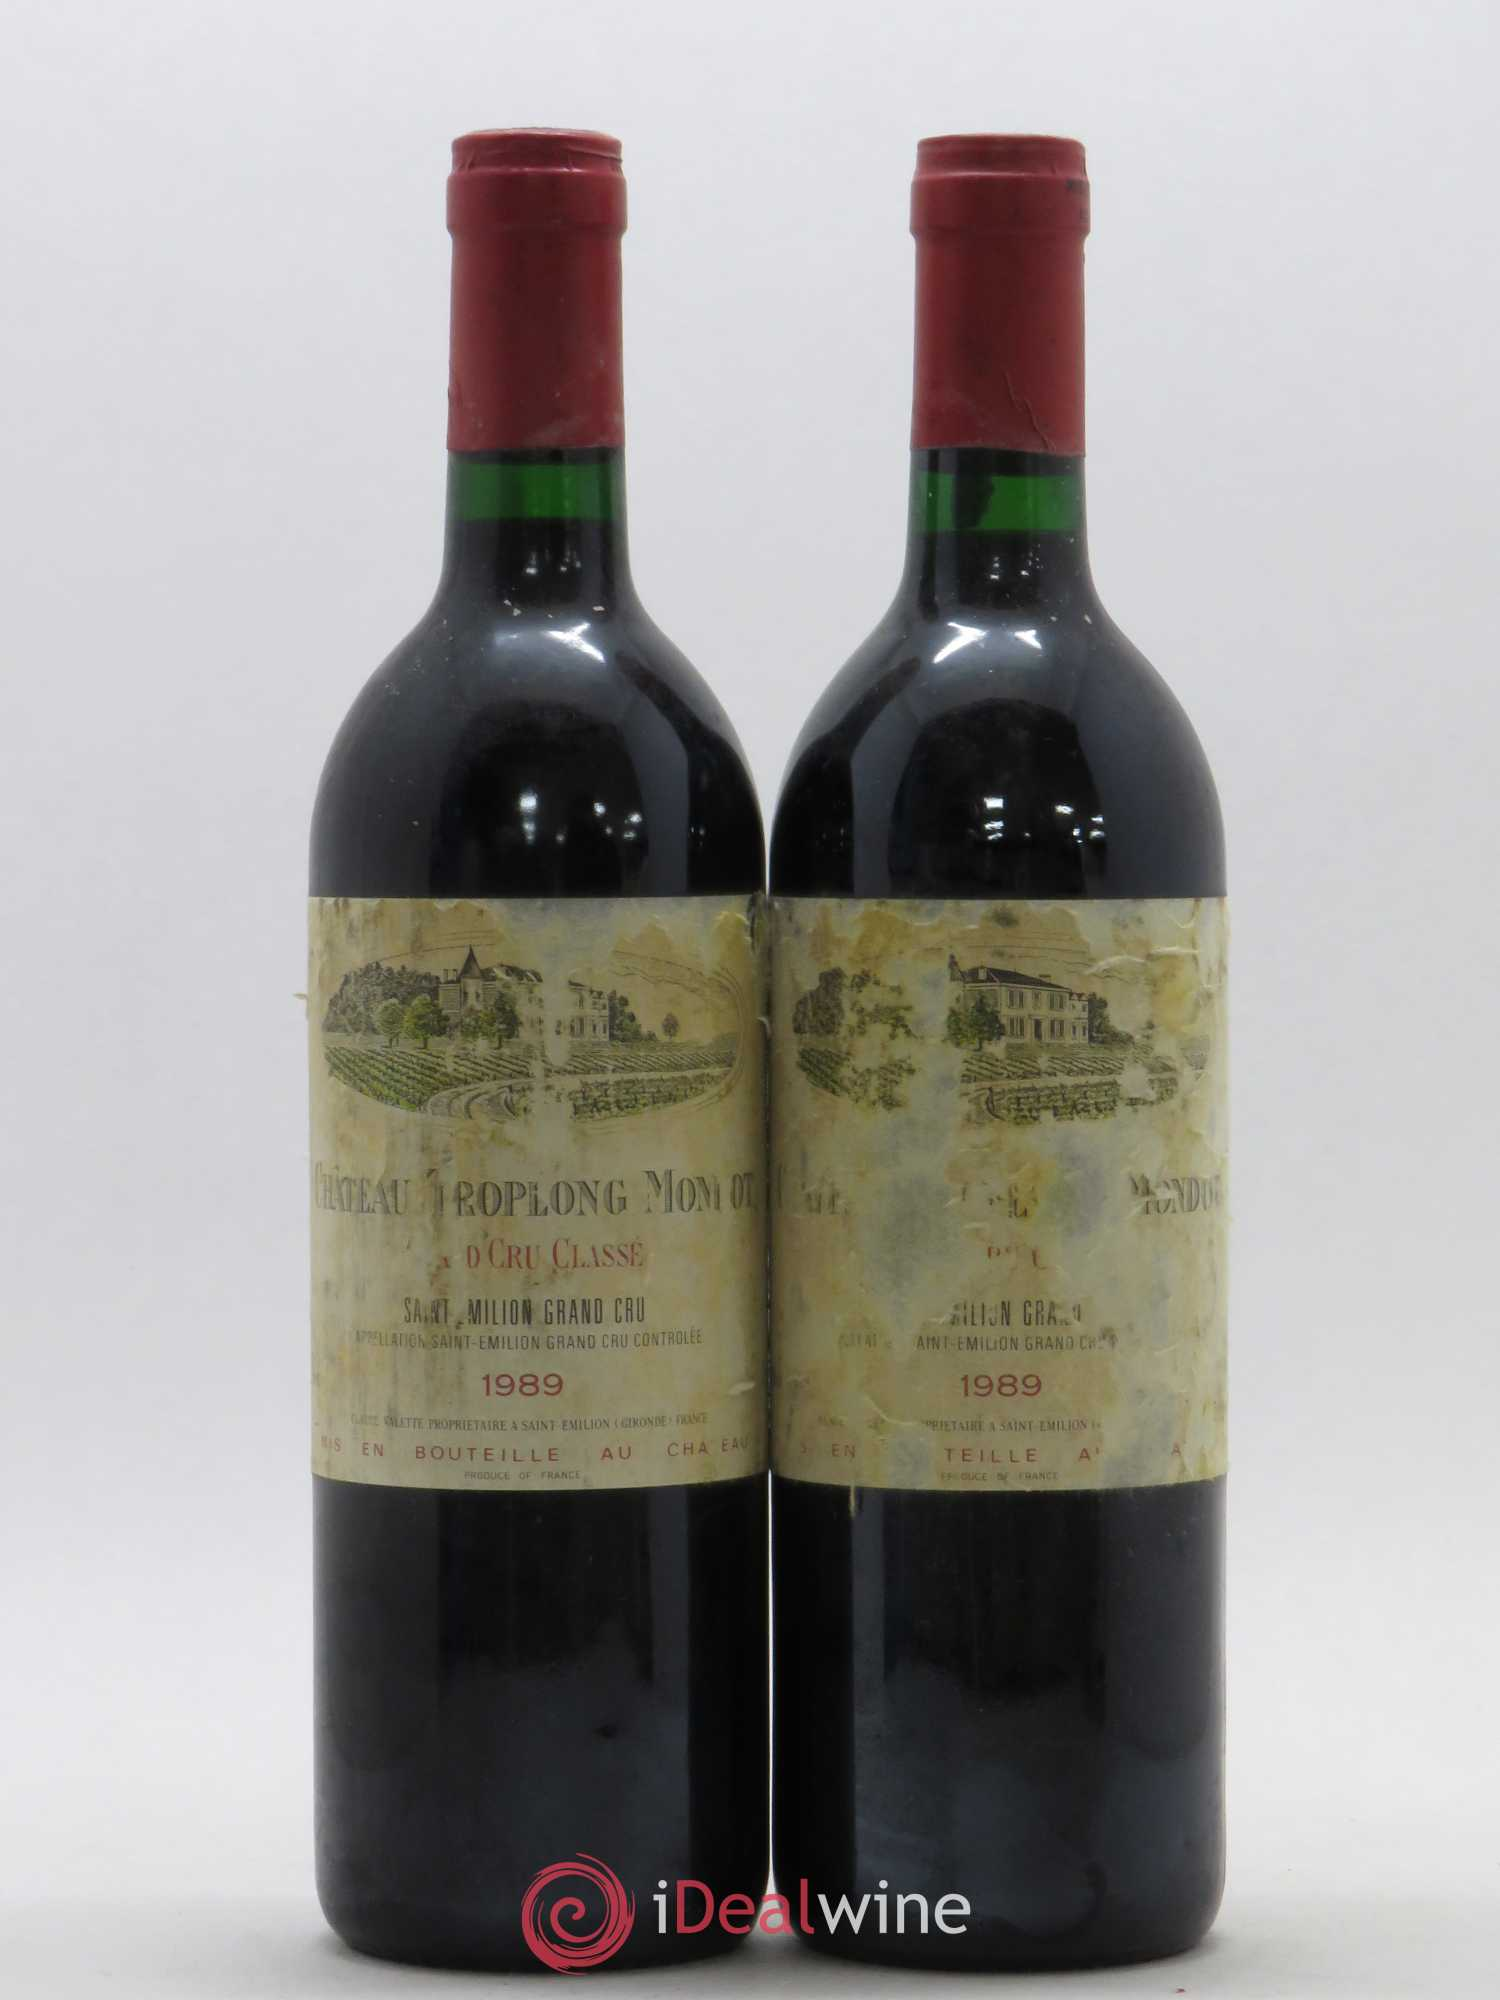 Château Troplong Mondot 1er Grand Cru Classé B  1989 - Lot of 2 Bottles